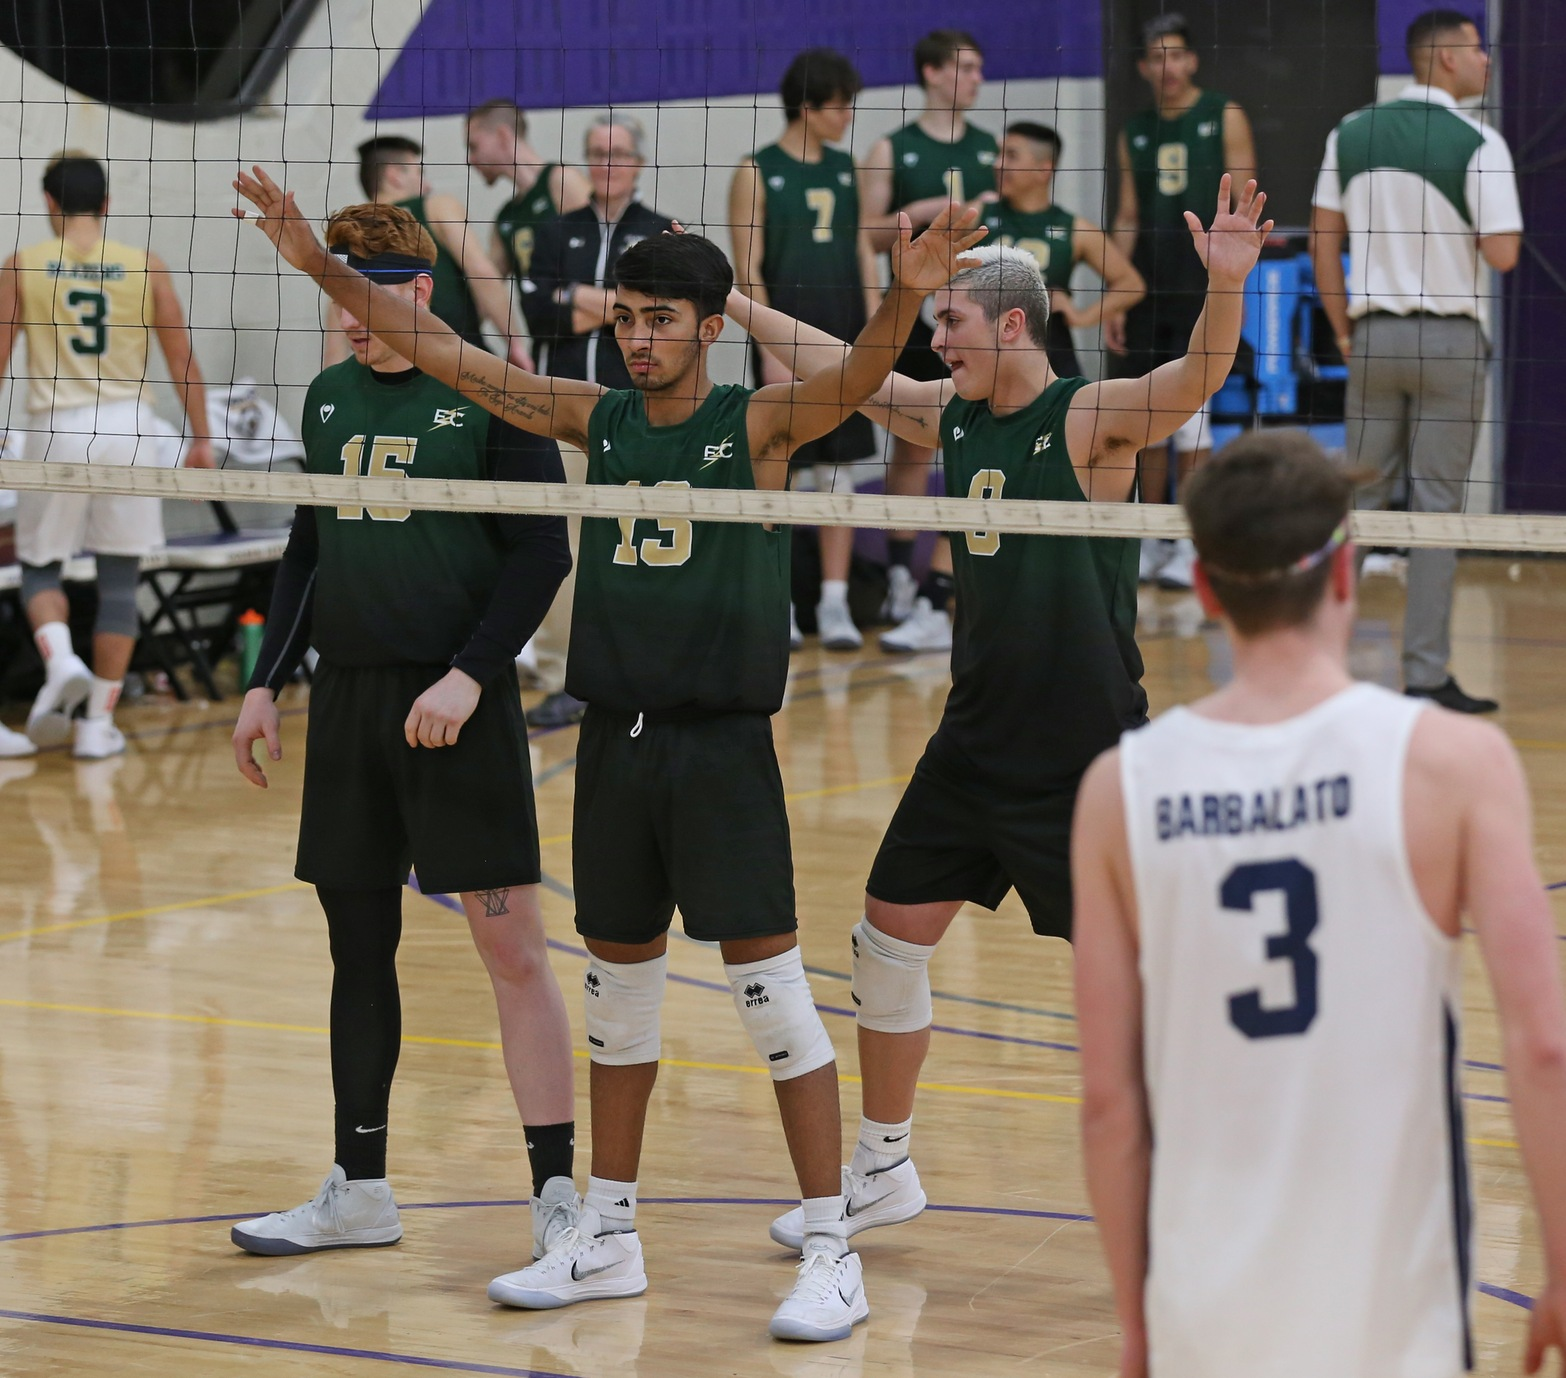 NO. 15 Men's Volleyball Split Tri-Match With NO.10 Endicott College and Vassar College